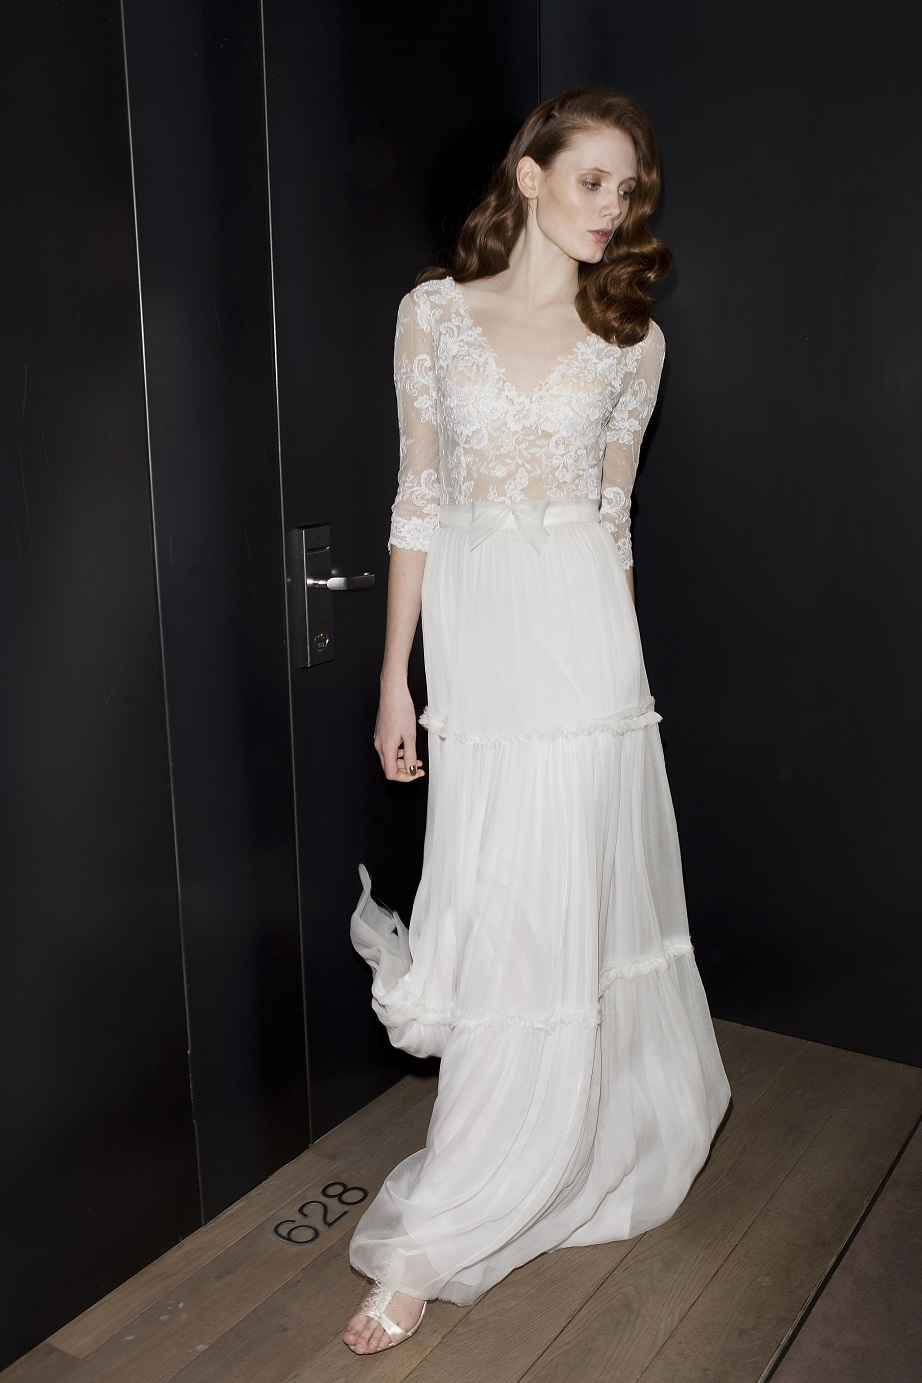 Roxanna wedding dress by Mira Zwillinger 2014 bridal